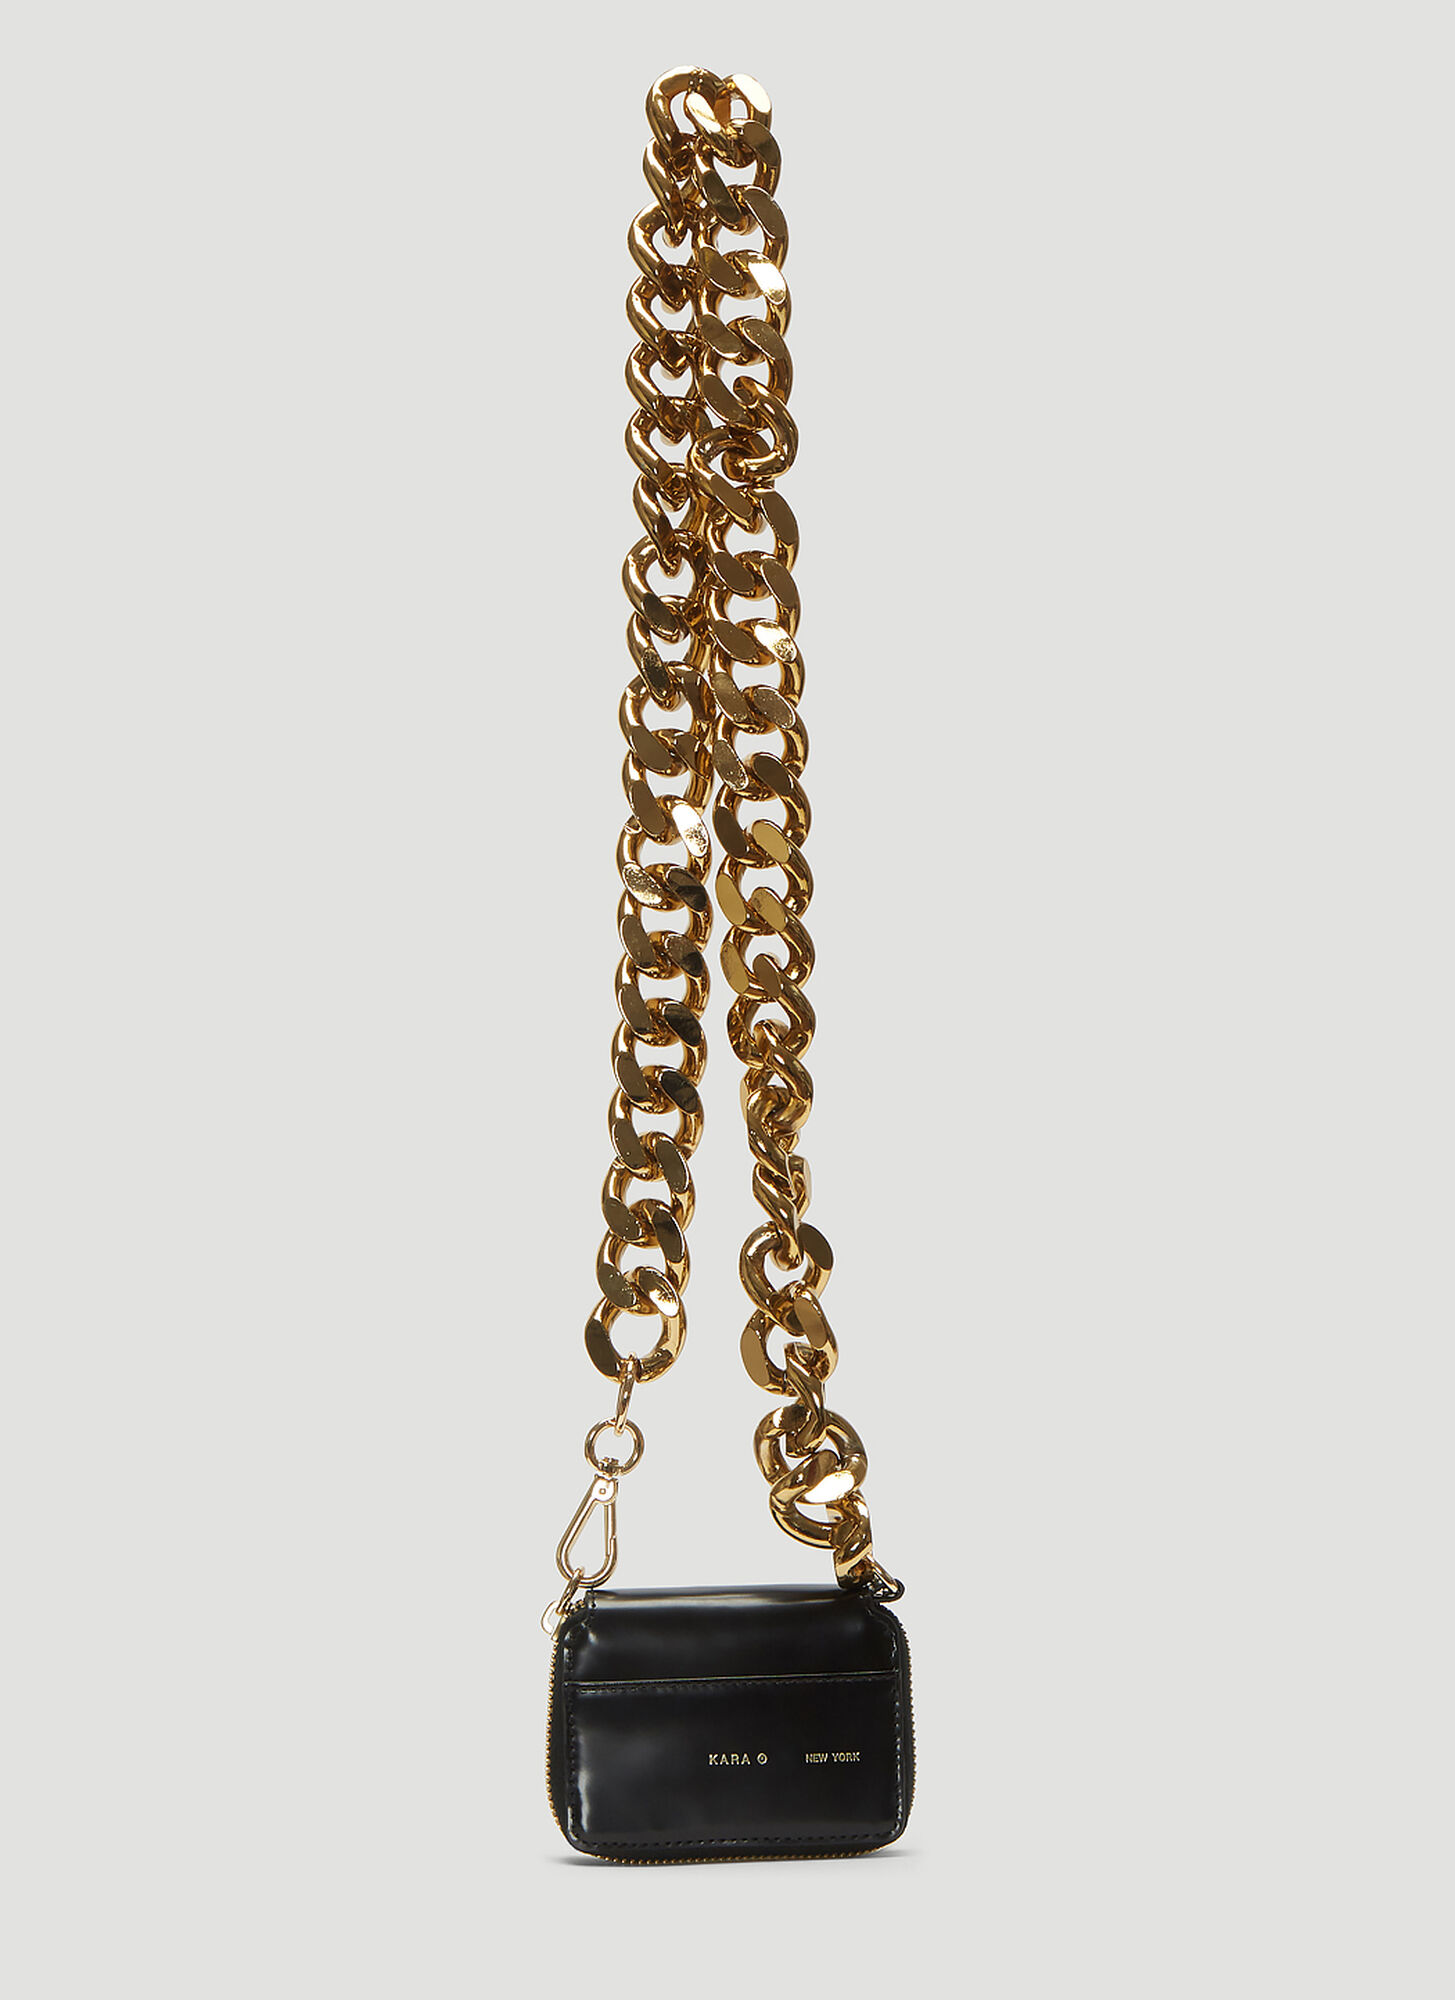 Kara Curb Chain Bikers Wallet (Exclusive Gold Chain Edition) in Black